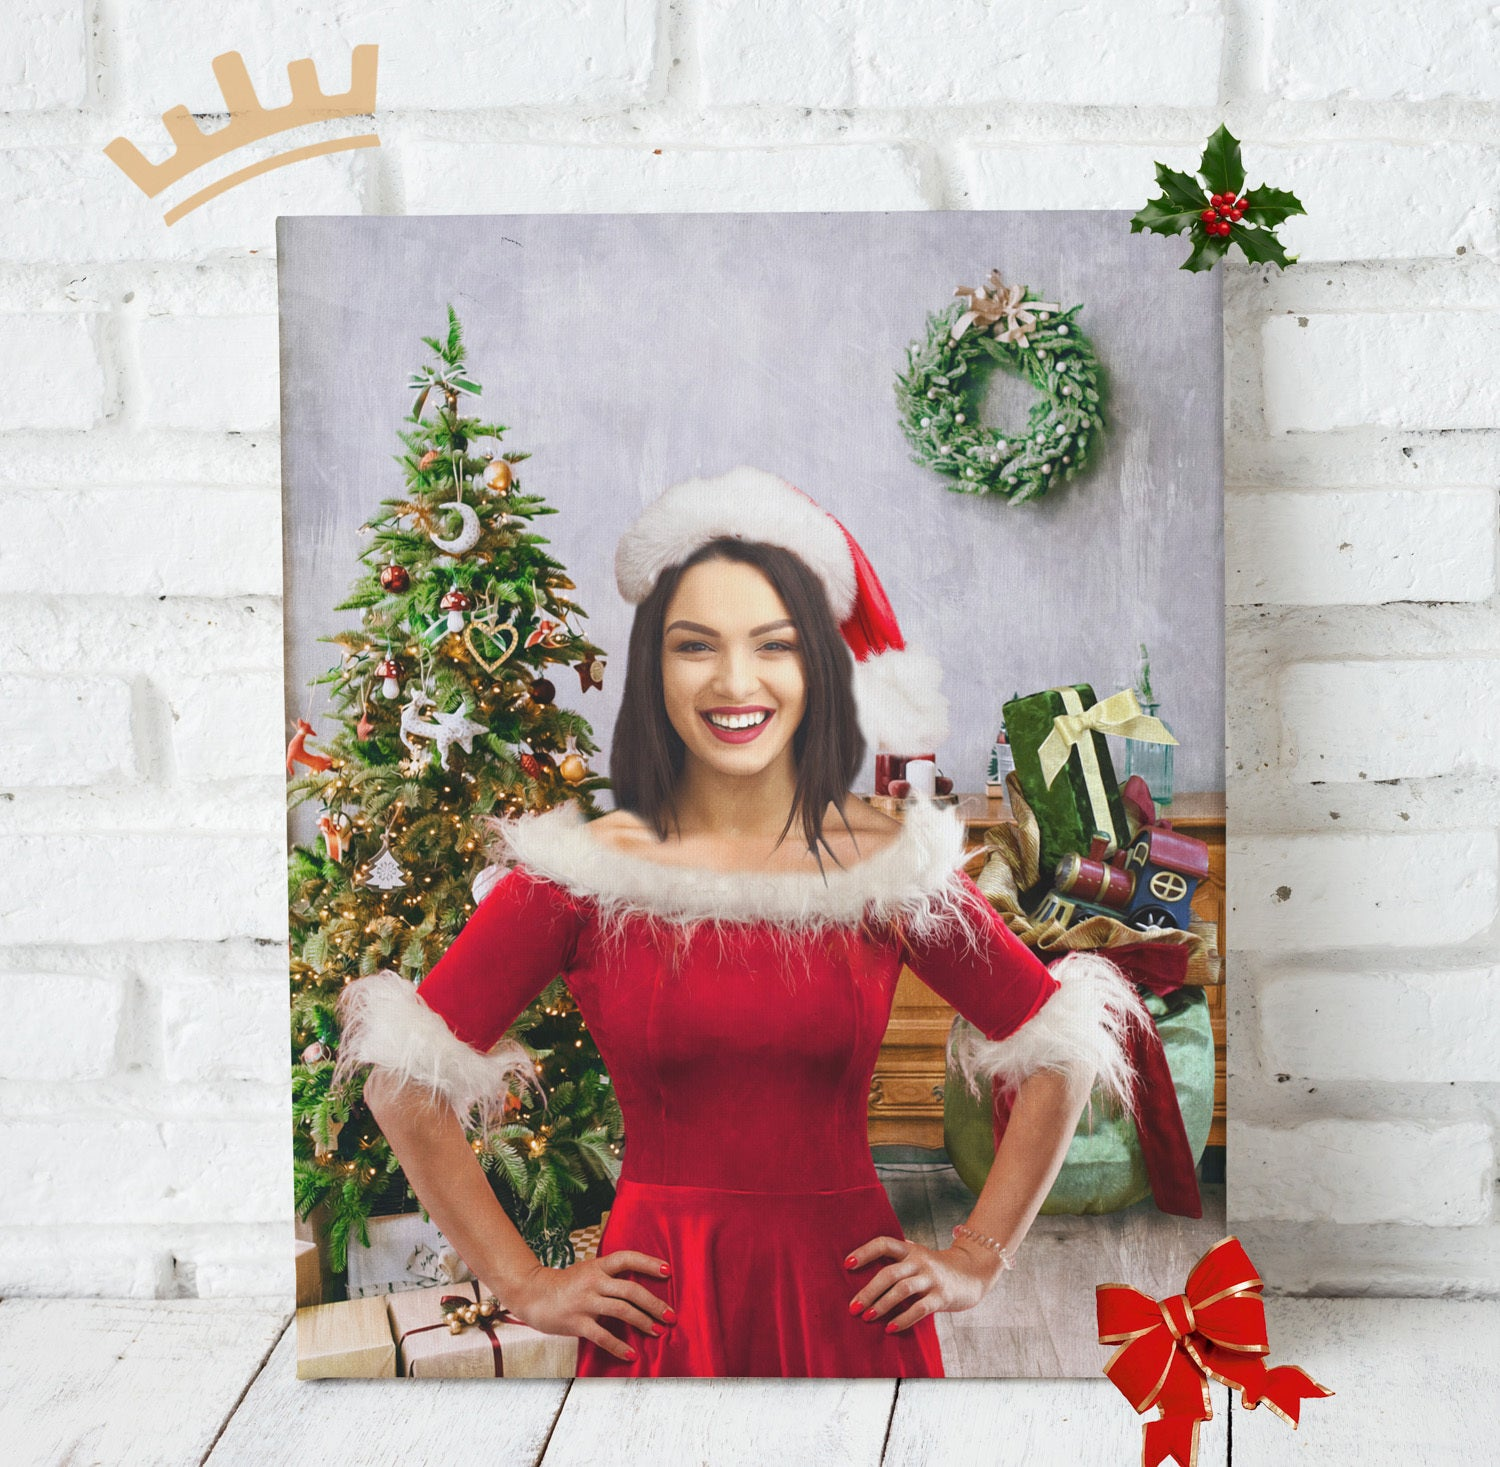 Lady Santa - Custom Portrait